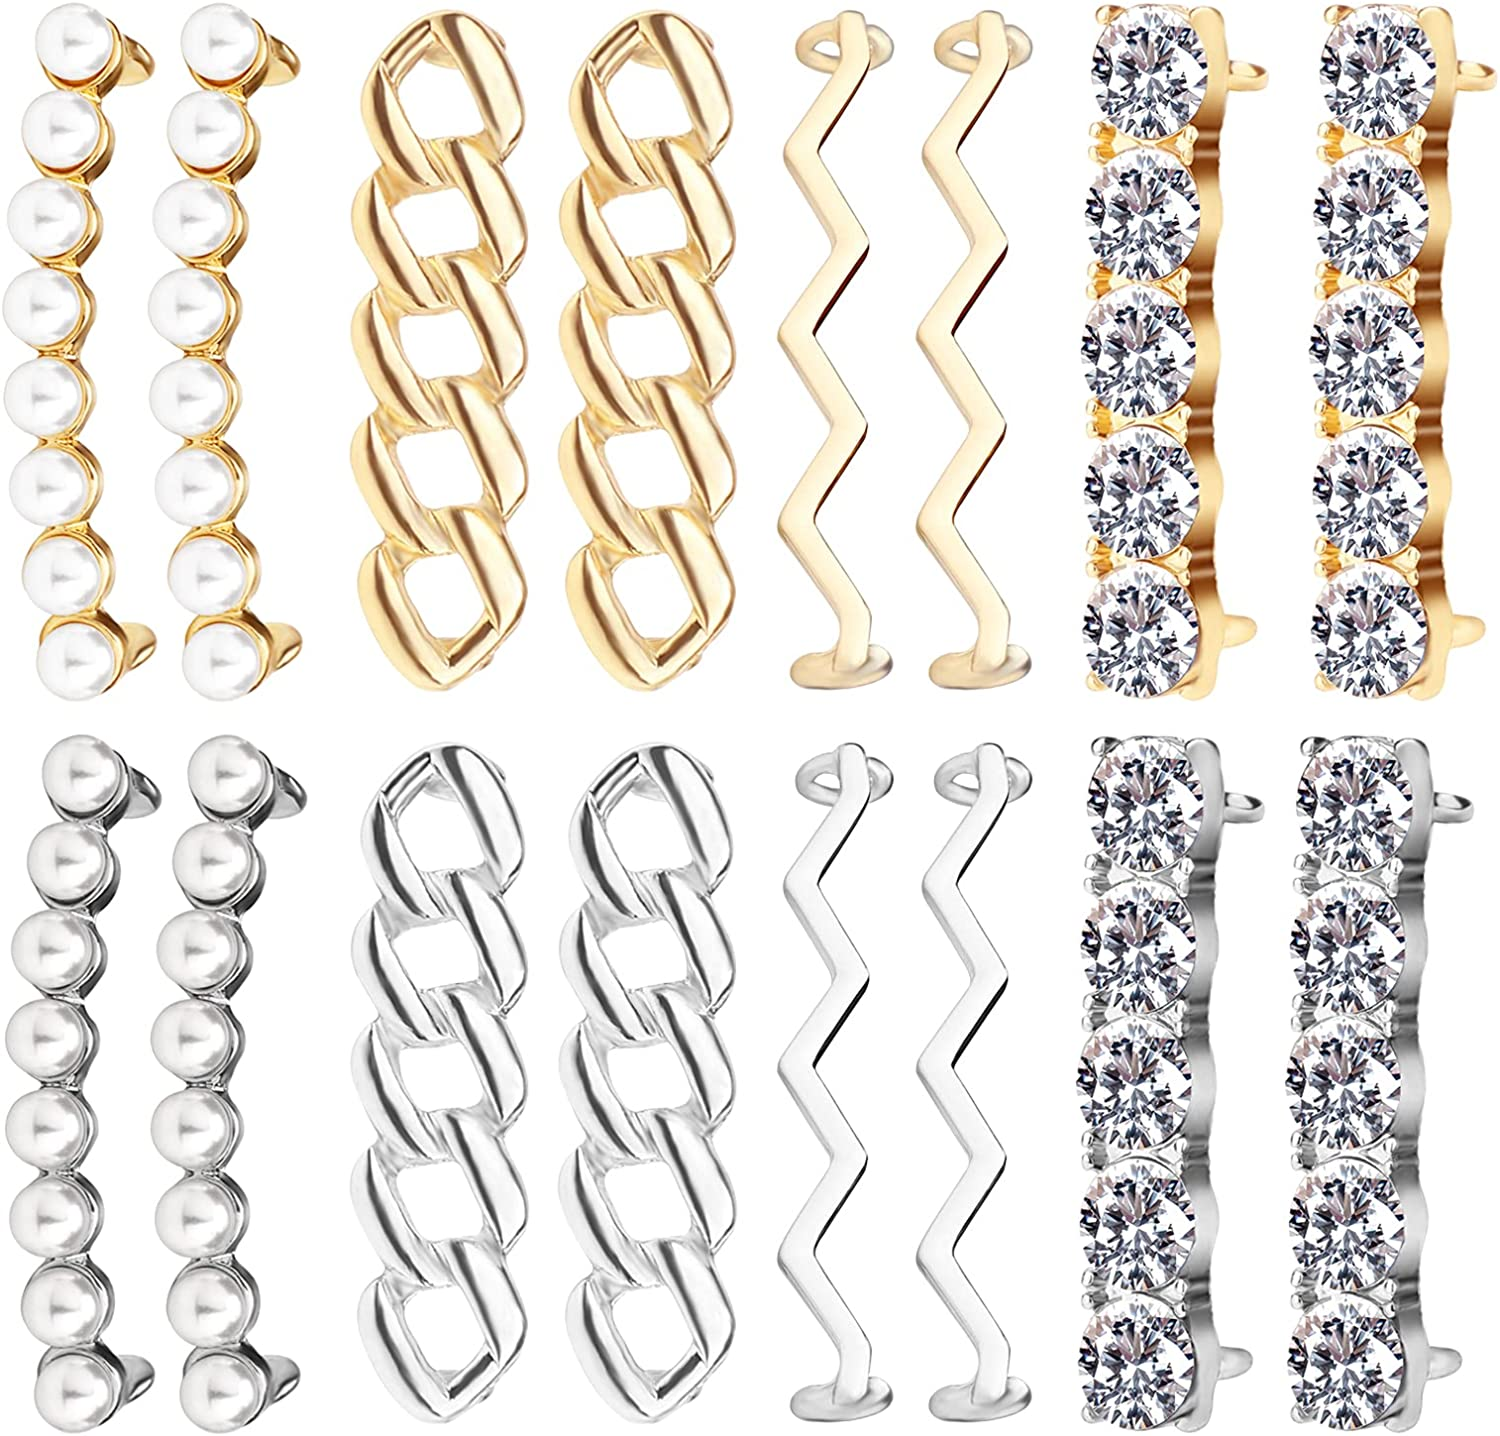 16 Pieces Metal safety Shoelaces Clips Max 67% OFF Gold Decorative Silver Shoe Clip